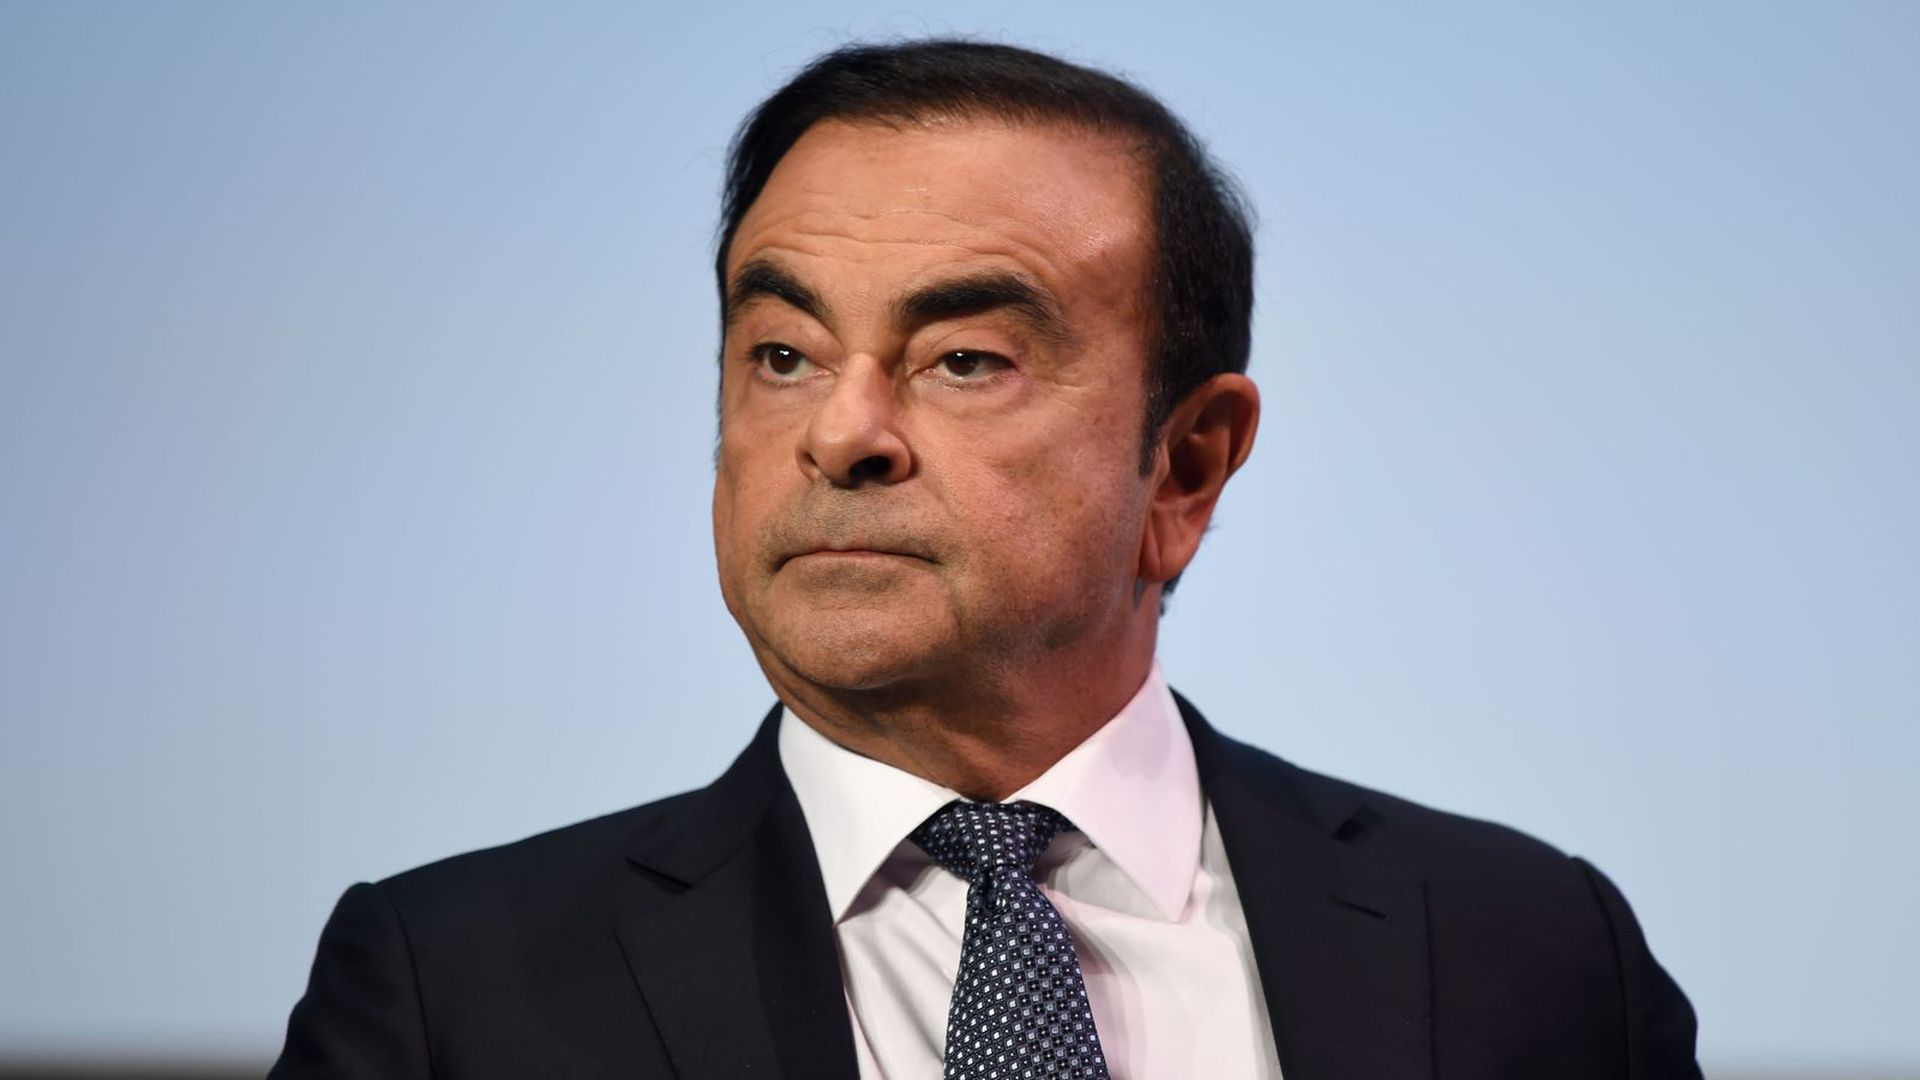 Former Nissan Motor Co boss Carlos Ghosn says he's innocent of all the charges against him.